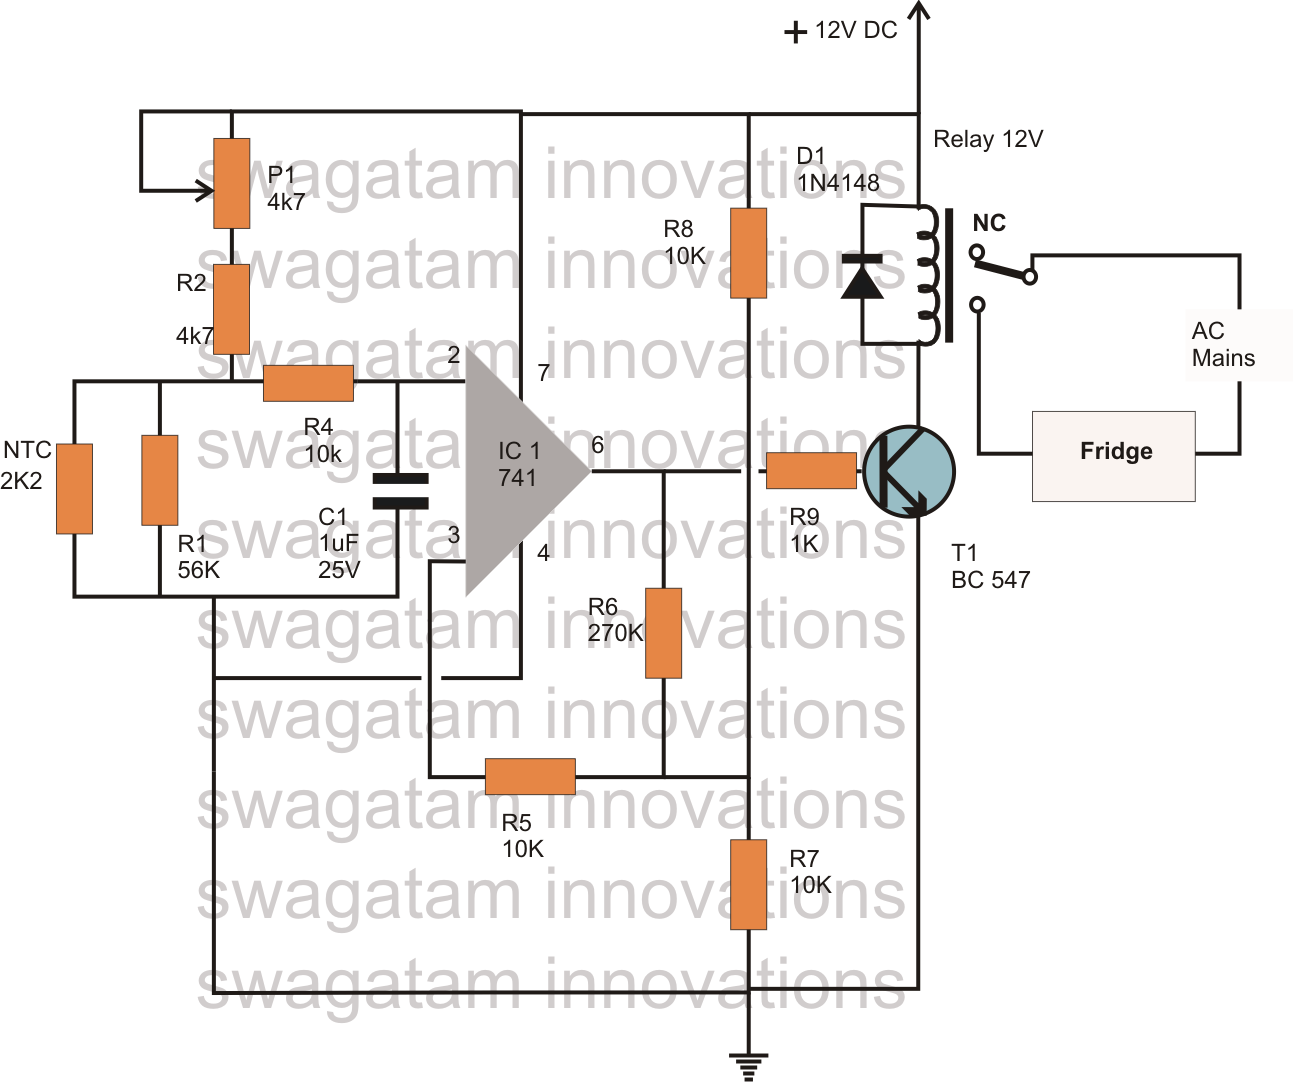 diy incubator wiring makers frigidaire refrigerator defrost thermostat diagram ge refrigerator thermostat replacement [ 1293 x 1082 Pixel ]